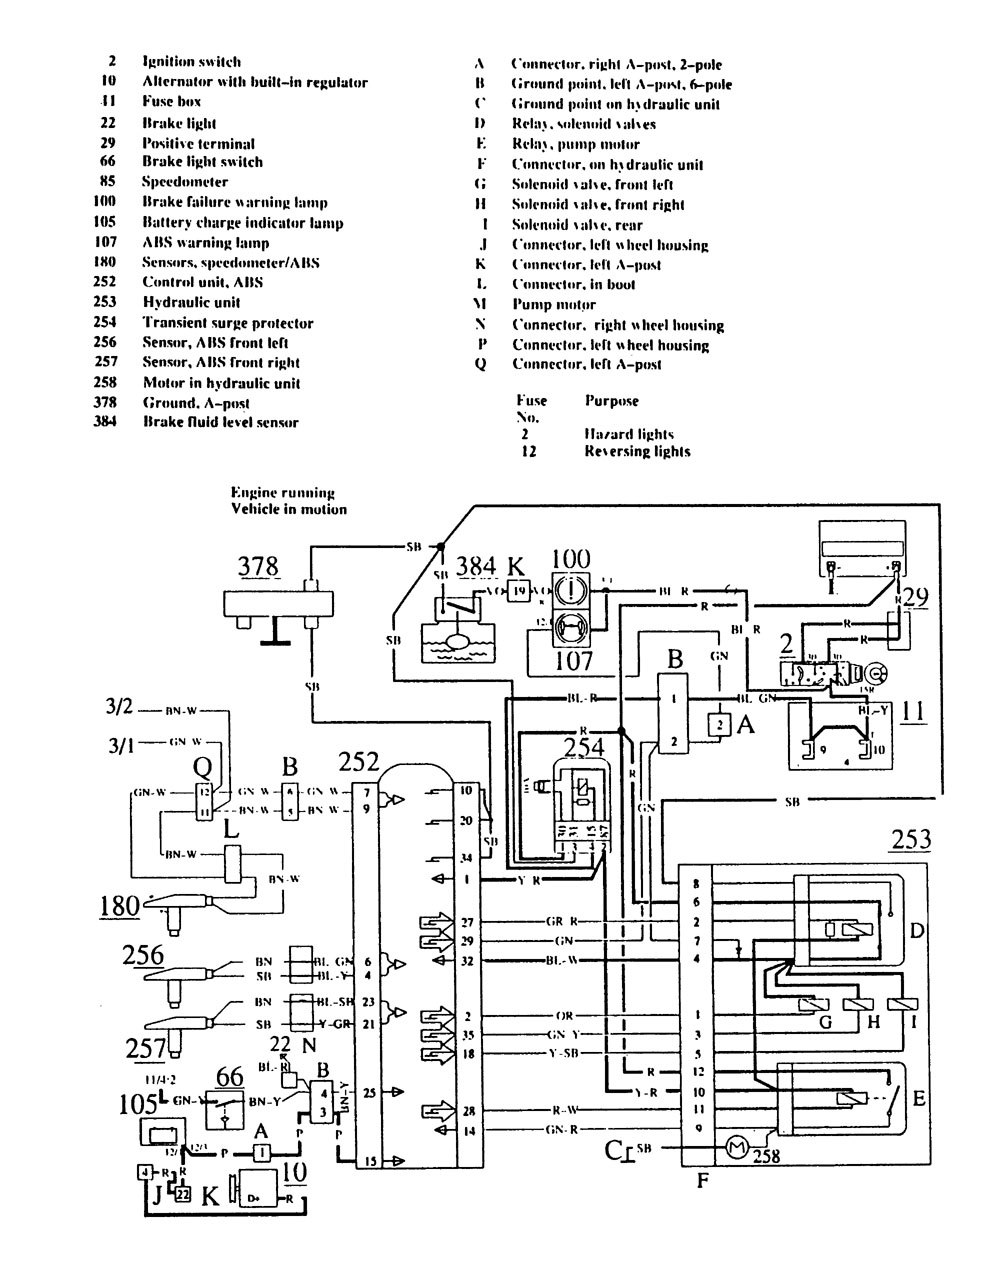 hight resolution of 91 volvo 740 fuse box diagram volvo 740 starter wiring 1990 volvo 240 tail light wiring diagram volvo fuel pump wiring diagram